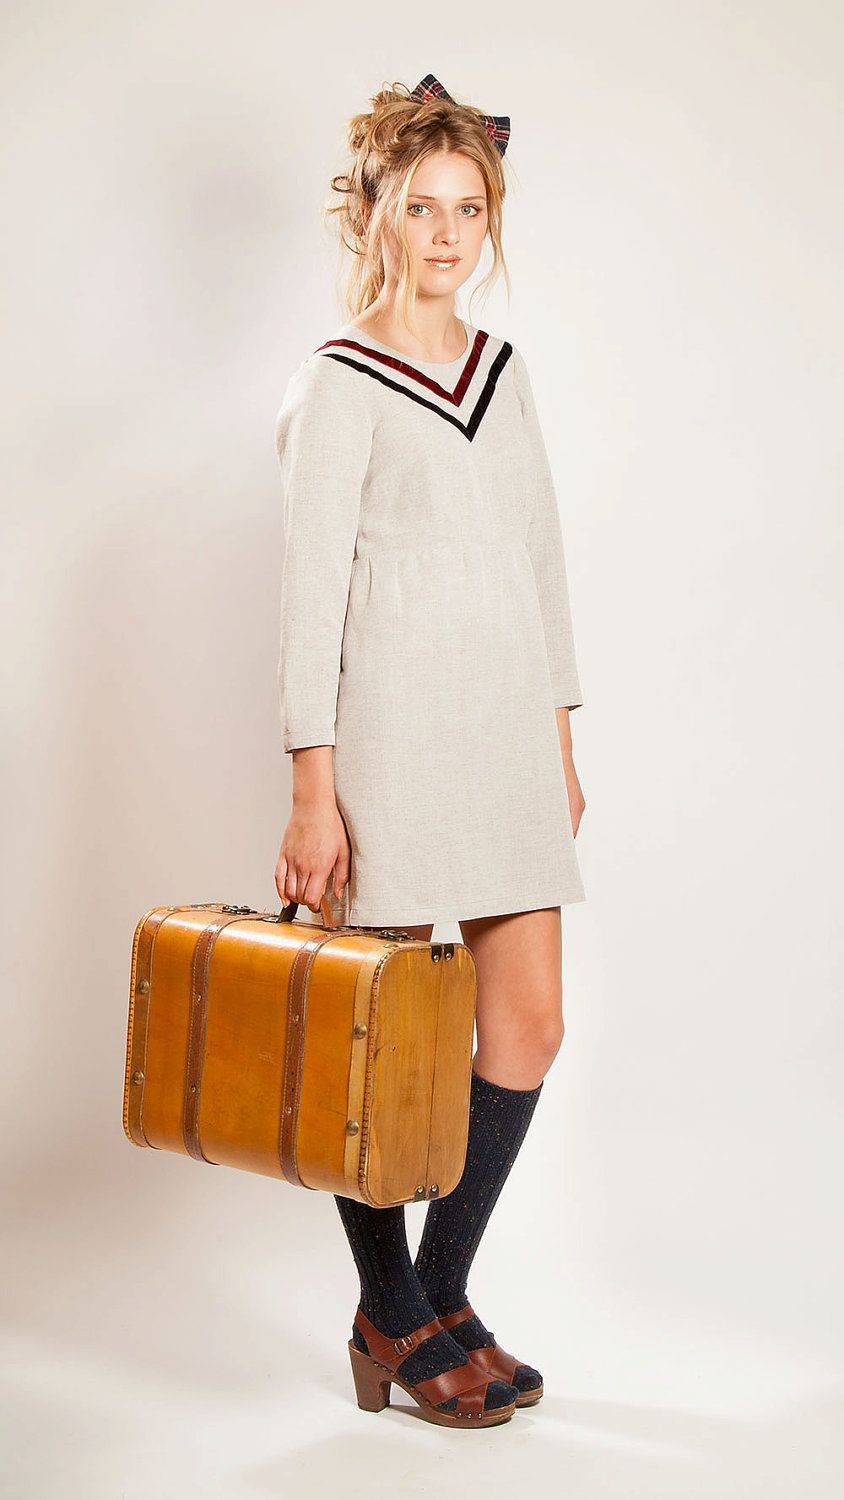 The umountain dwellersu cosy winter dress with by francesbakershop